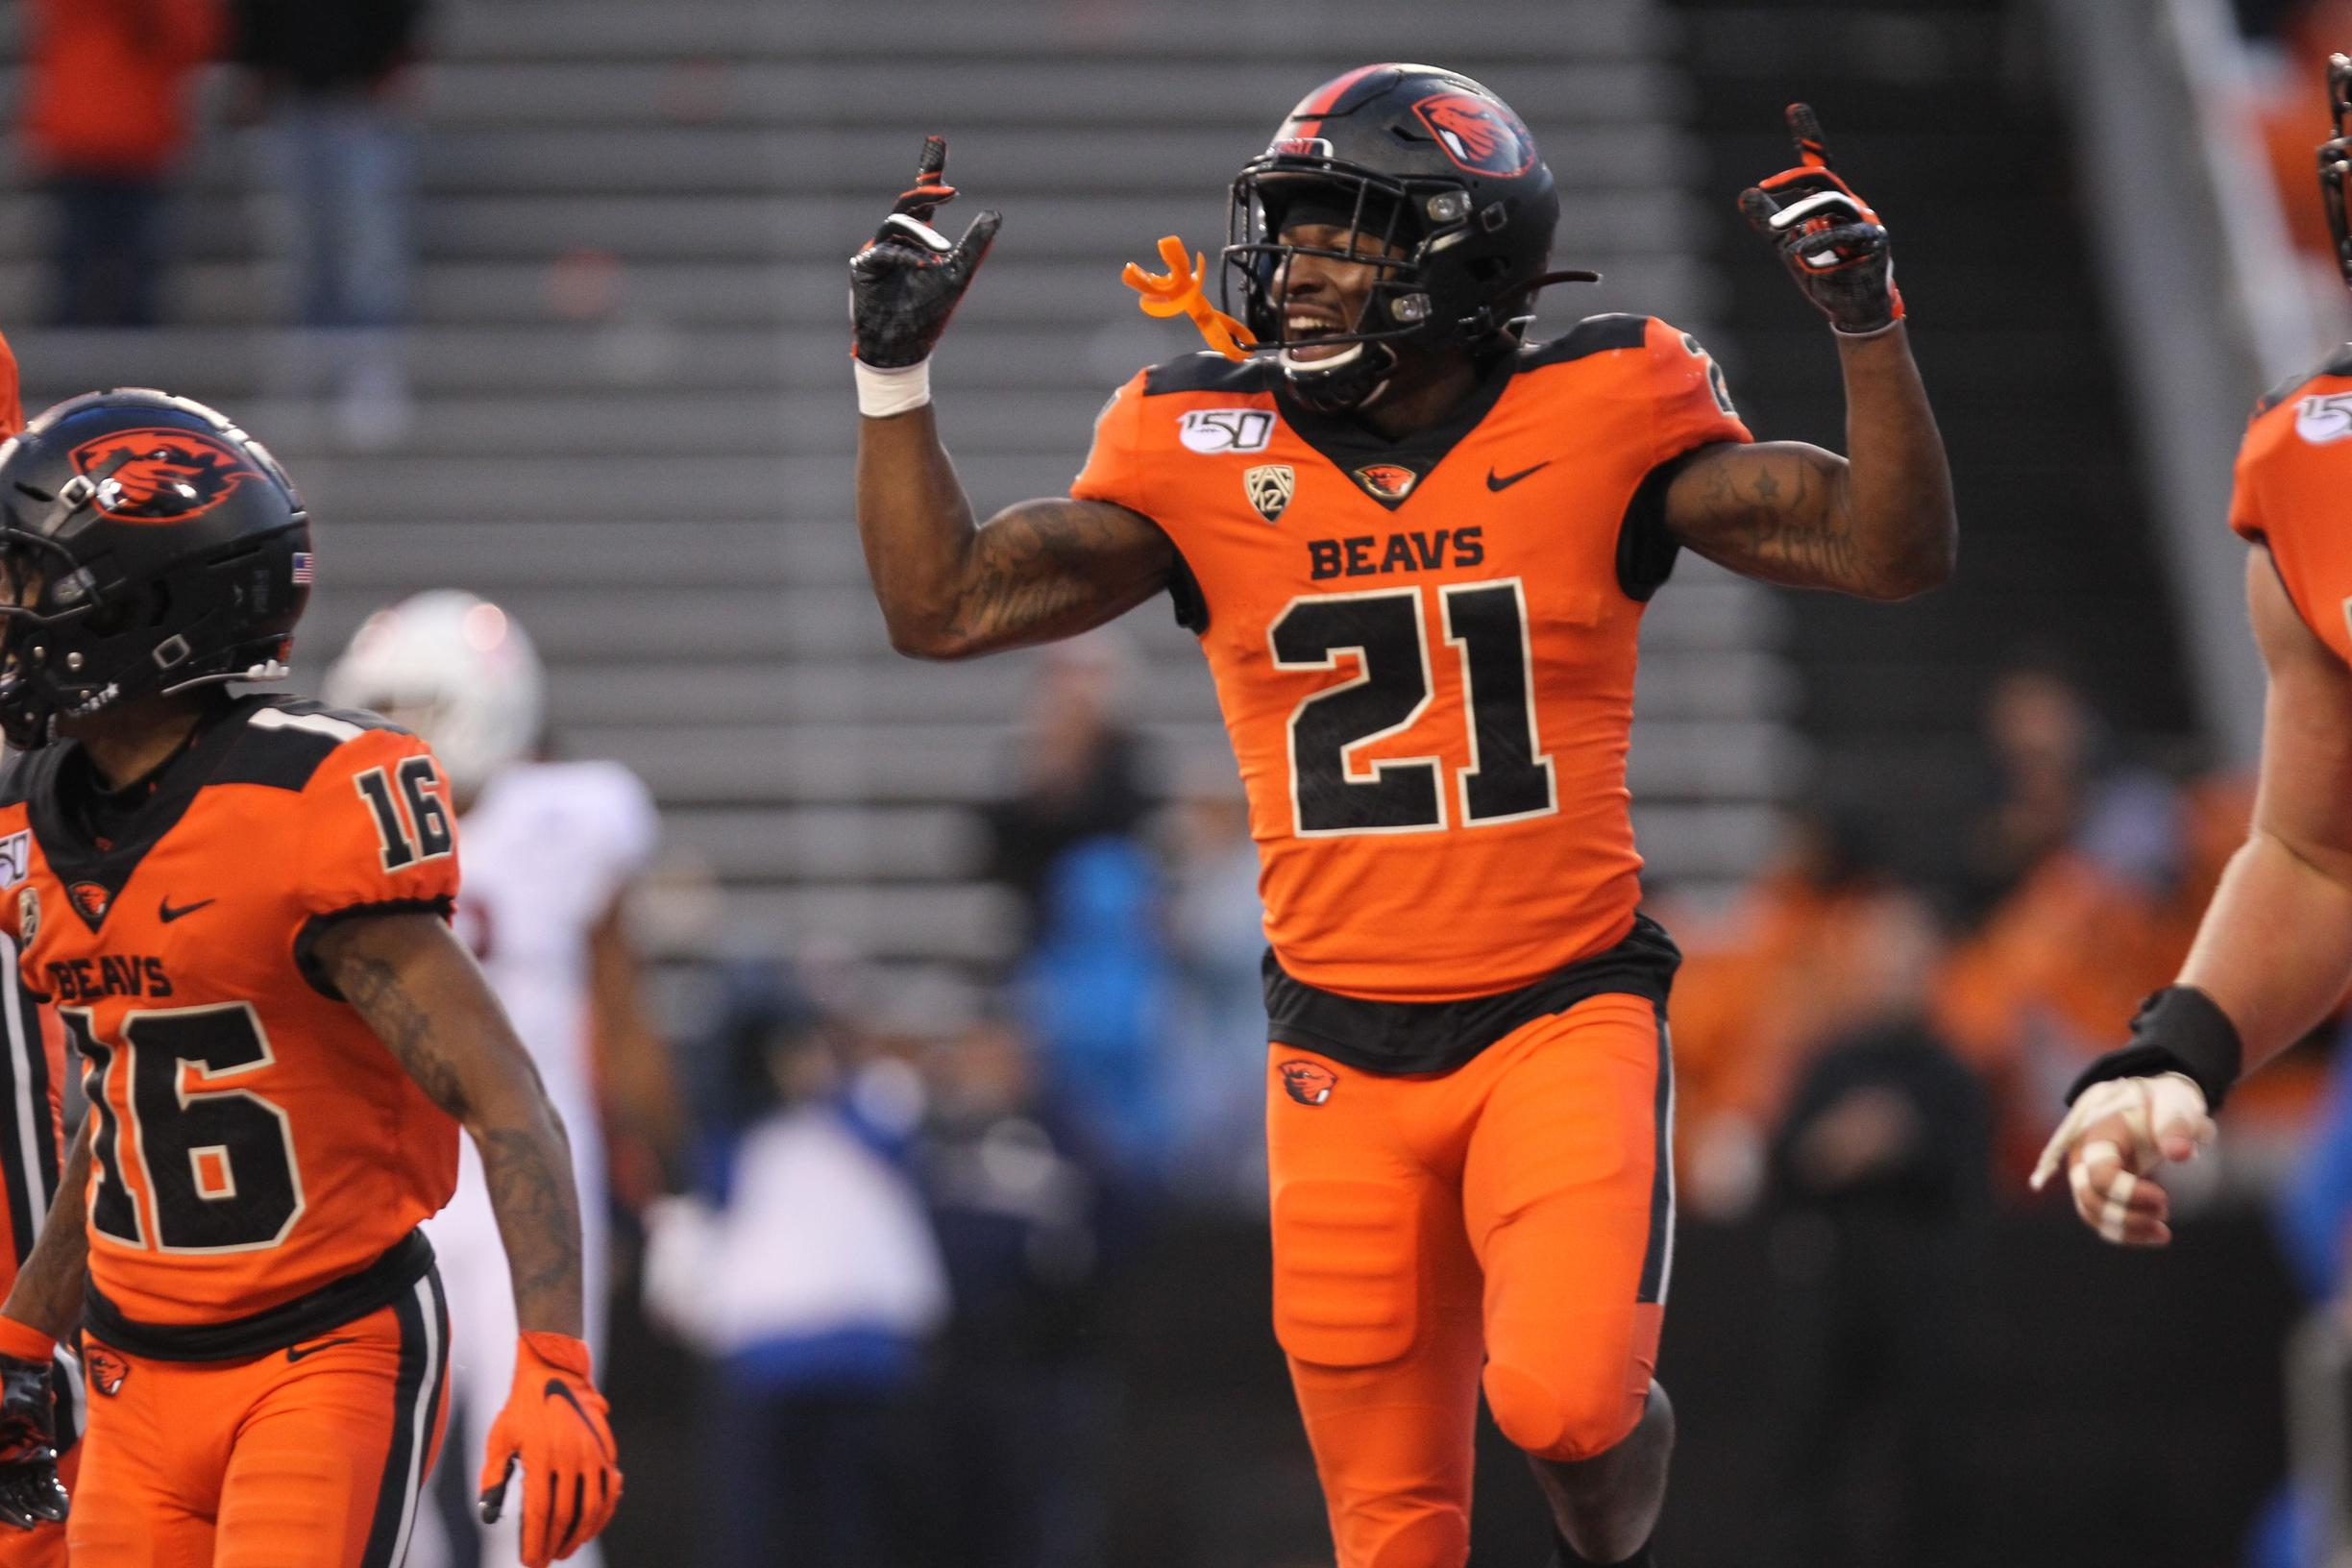 Four takeaways after the Oregon State Beavers 1-3 start